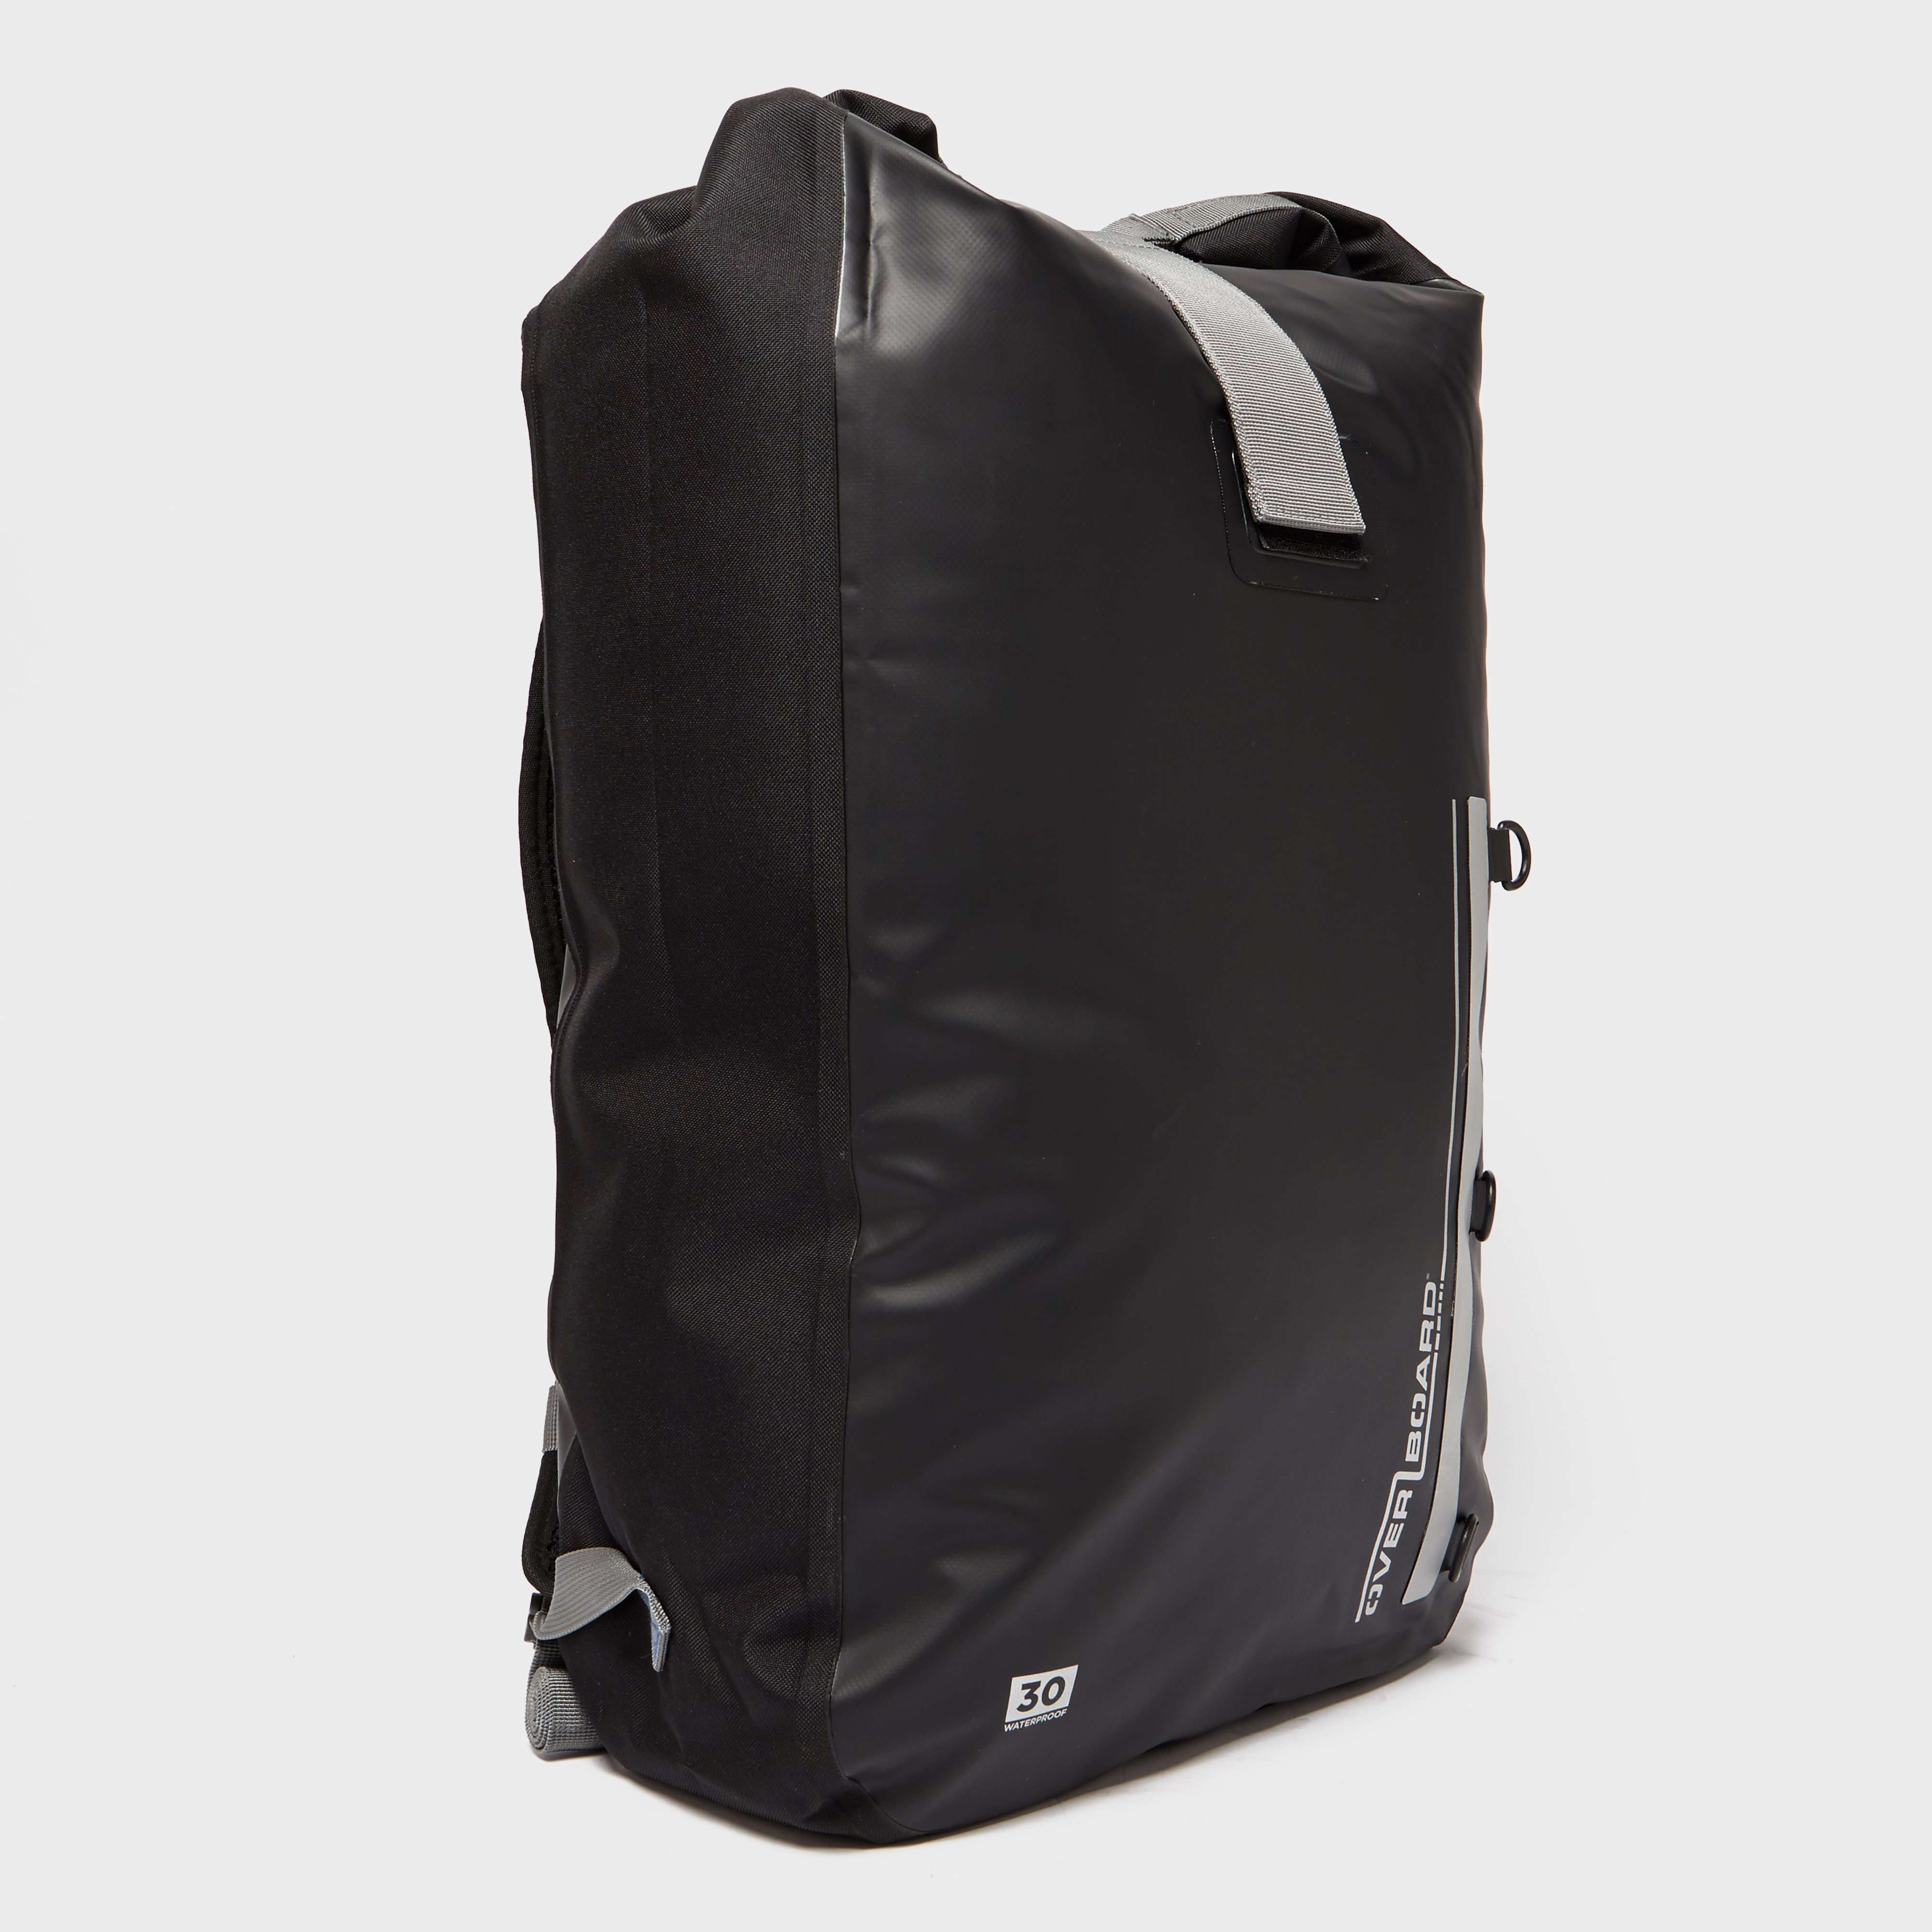 OVERBOARD Classic Waterproof Pack 30L